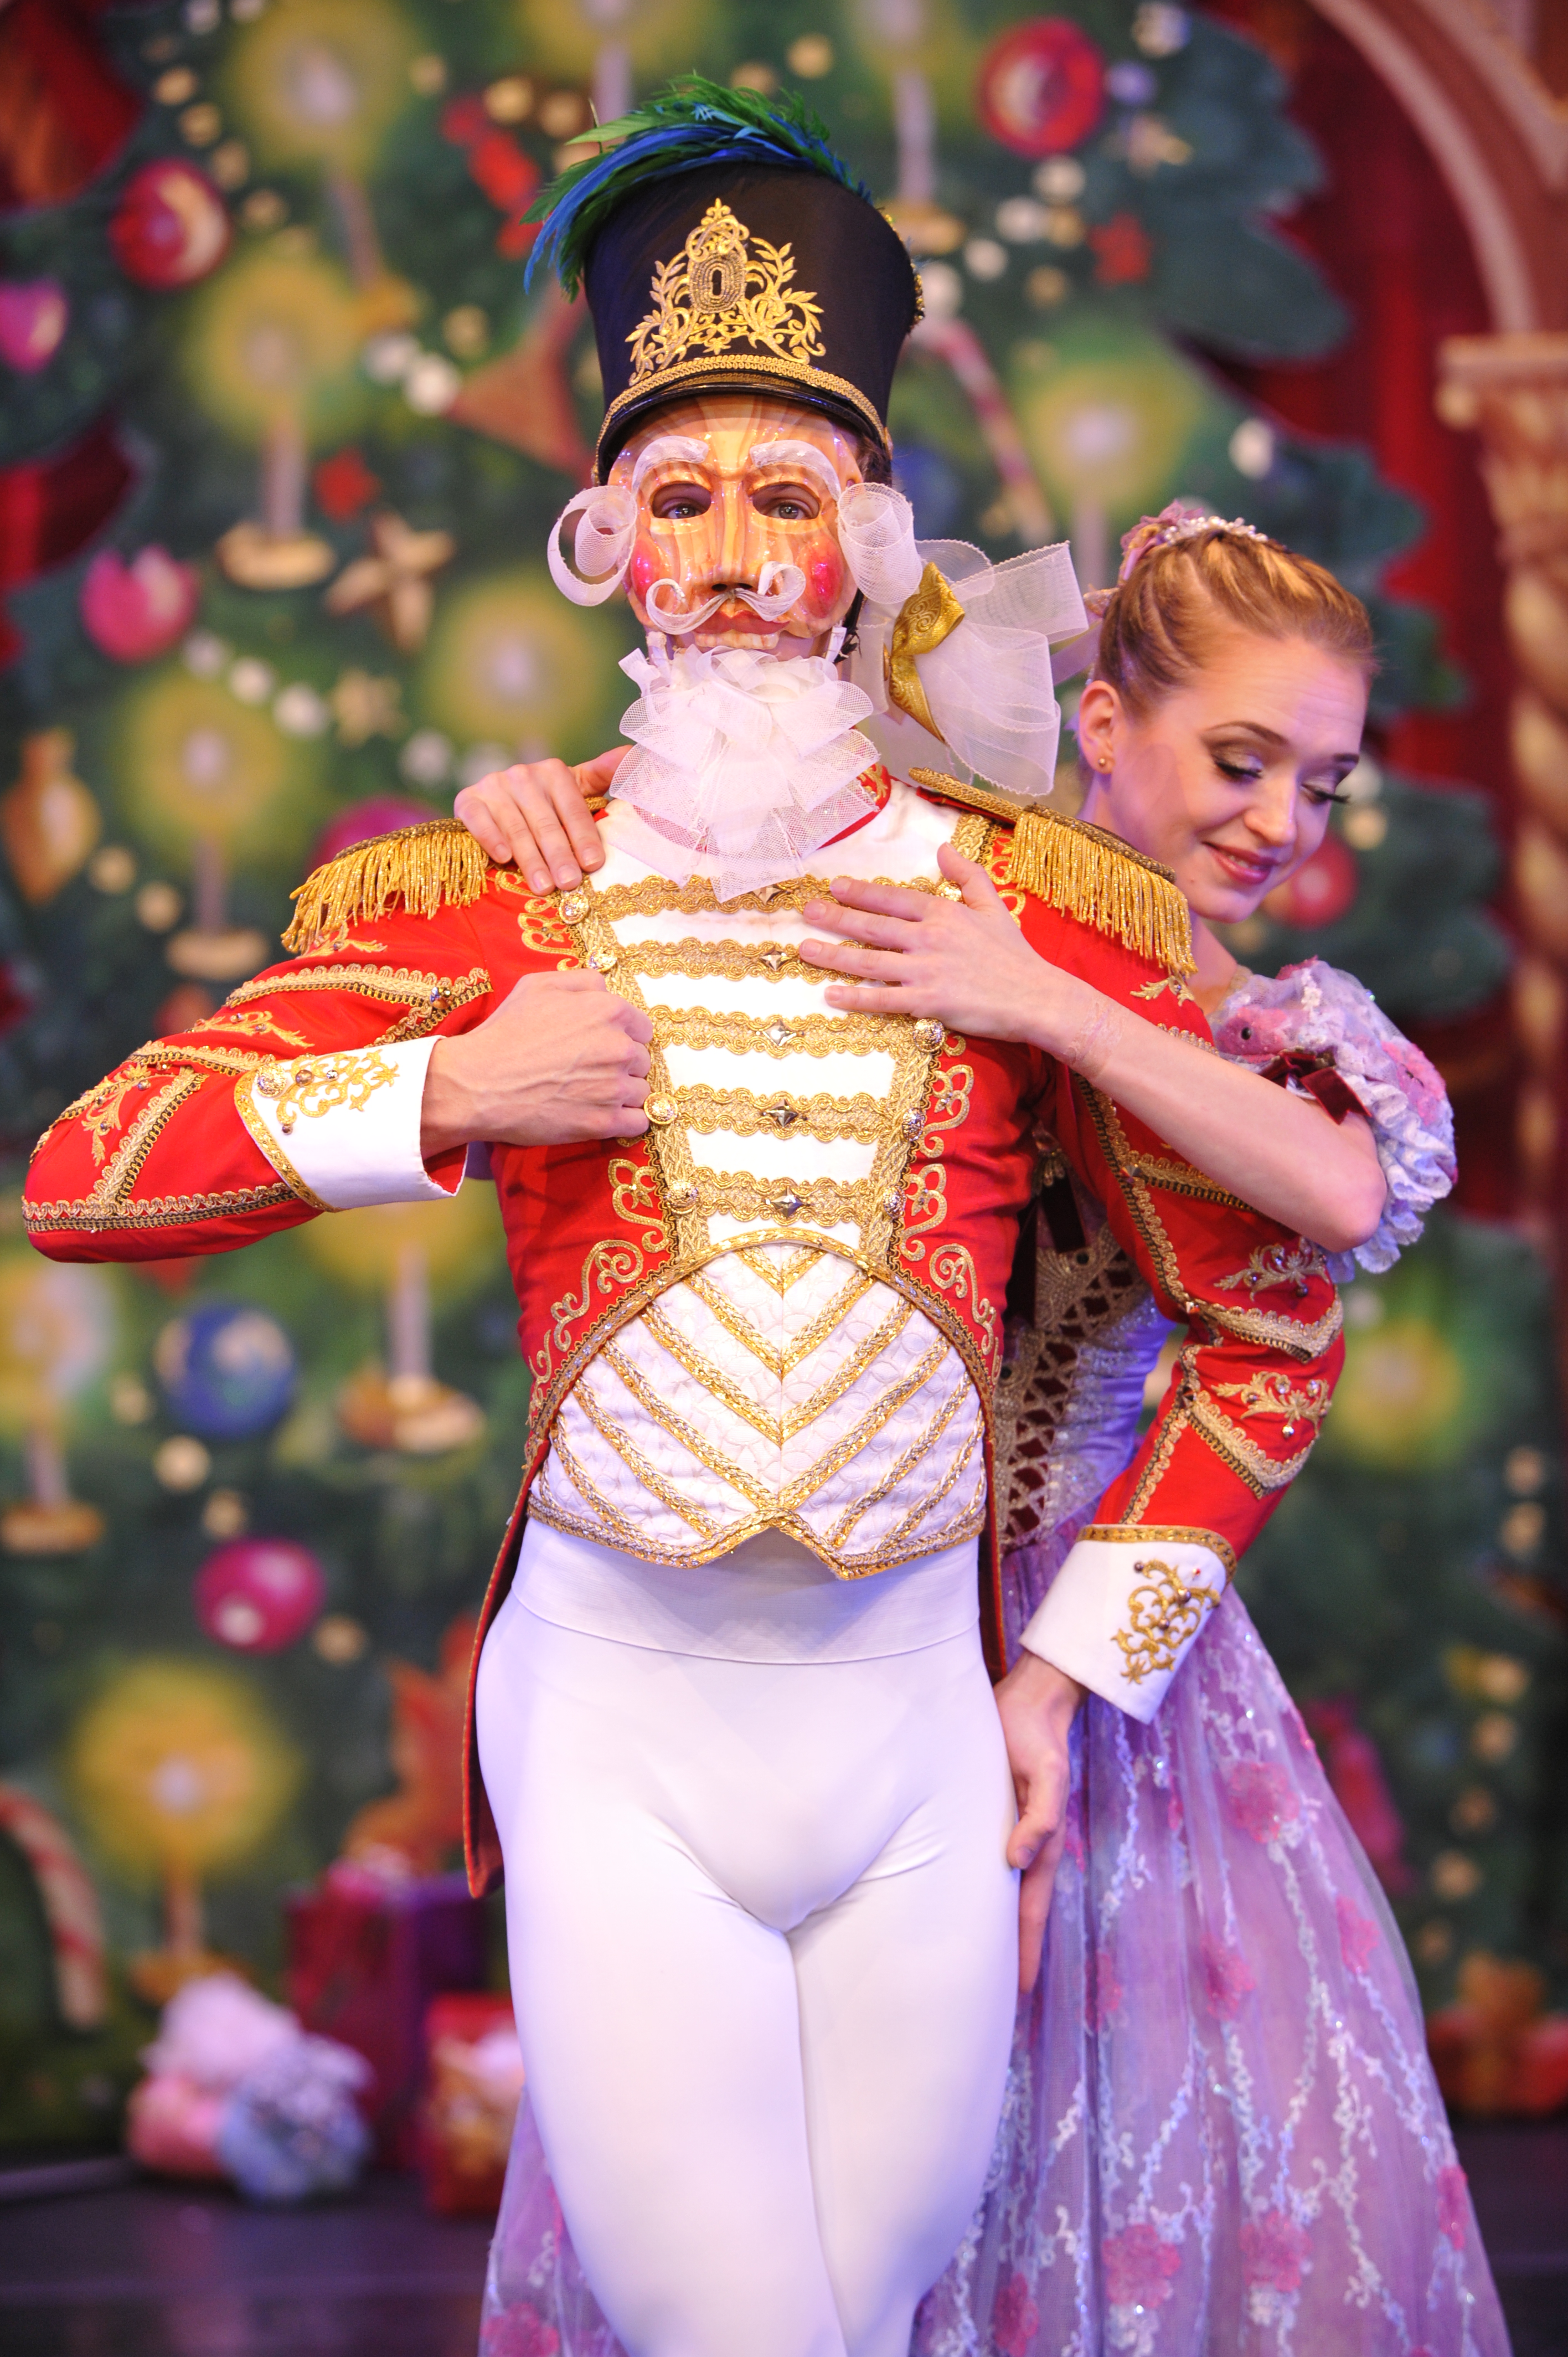 Moscow Ballet's Great Russian Nutcracker - Nutcracker Doll and Masha